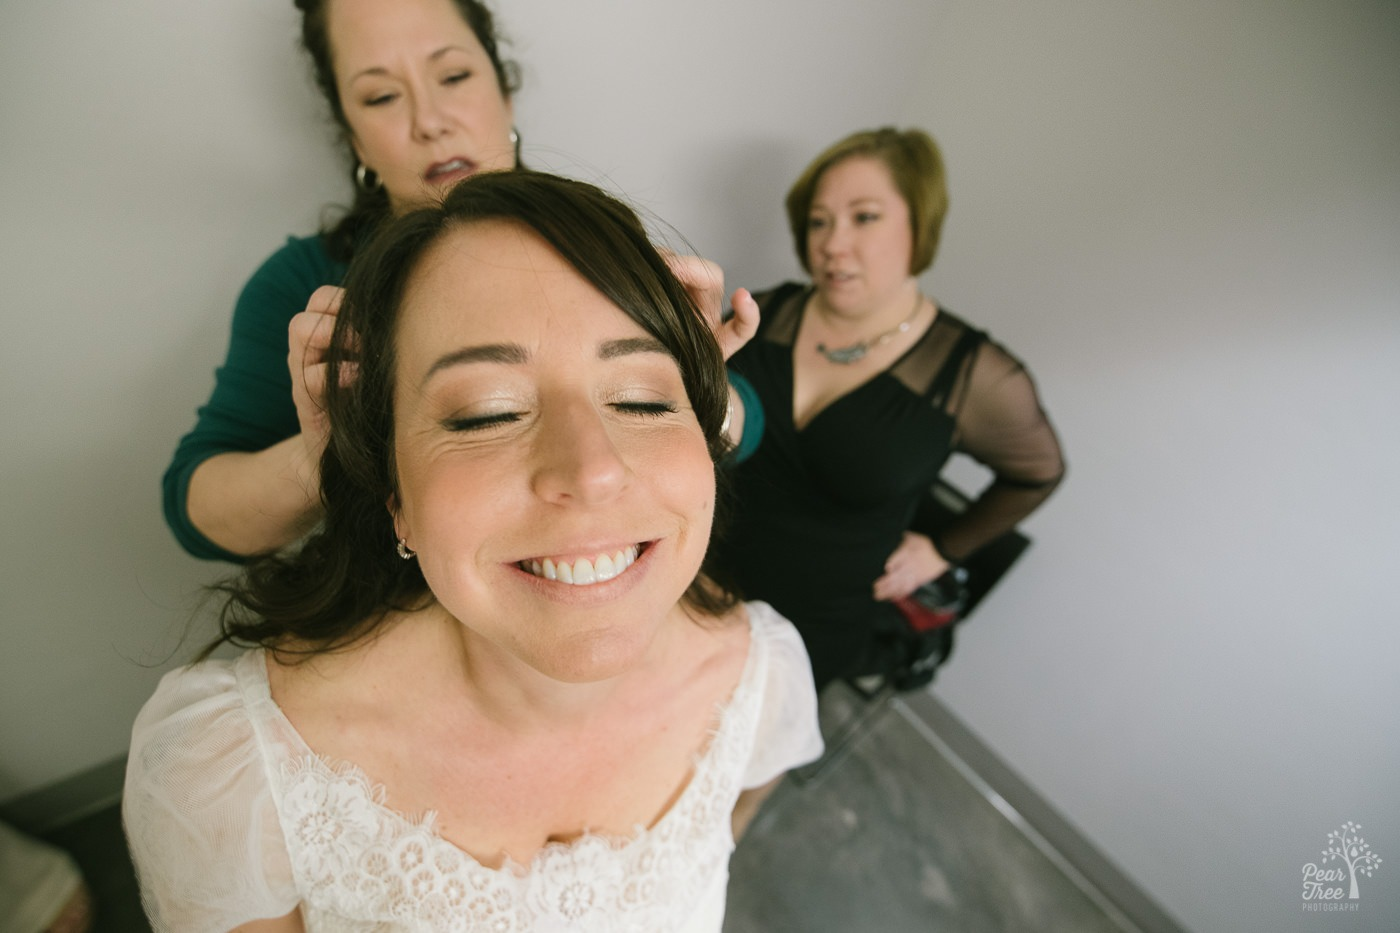 Bride smiling while her best friend is adjusting her hair.